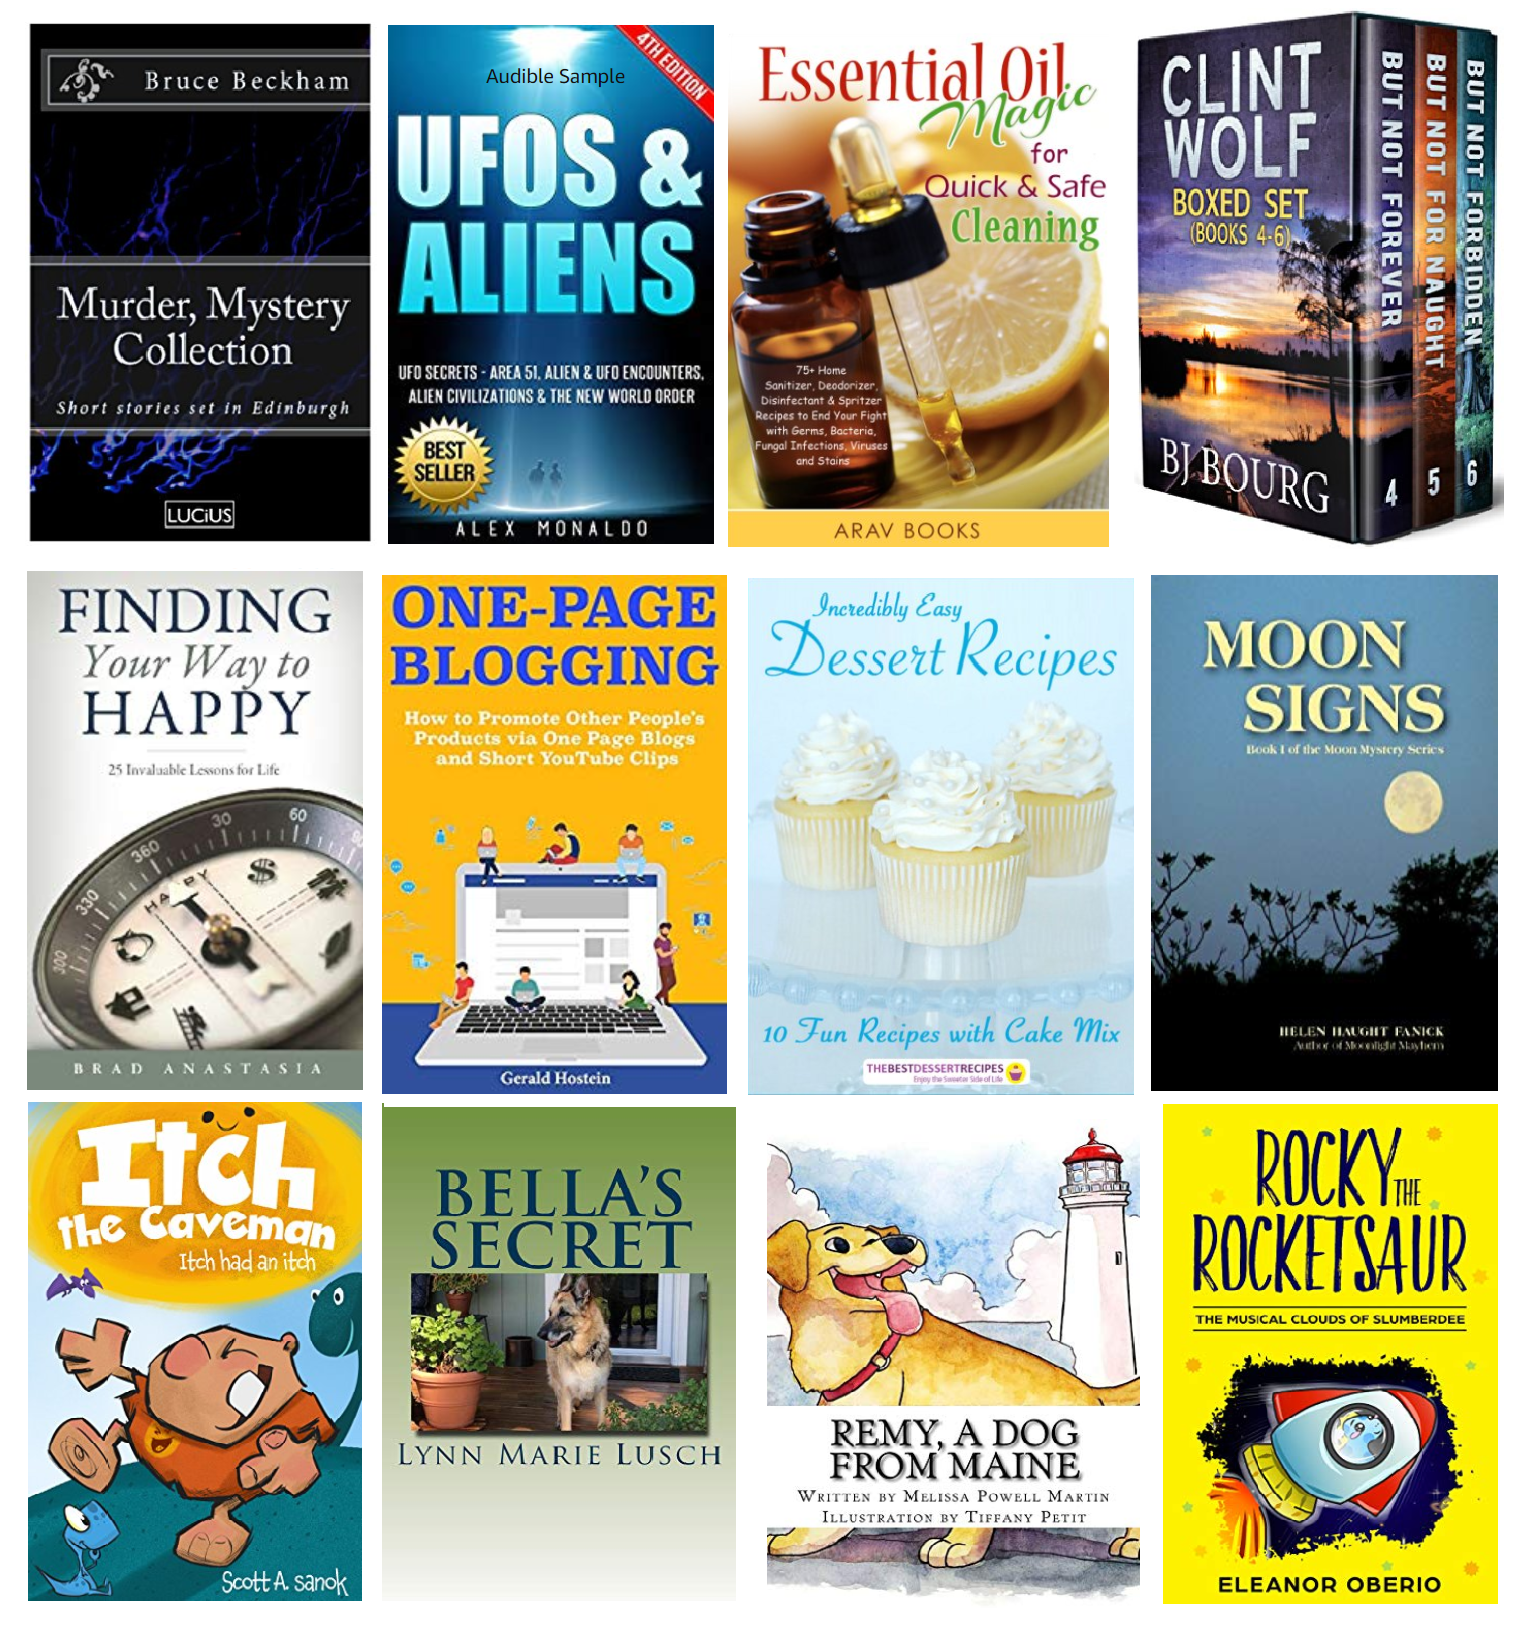 20 FREE Kindle Books plus 10 FREE for Kids! List for 9/2/18